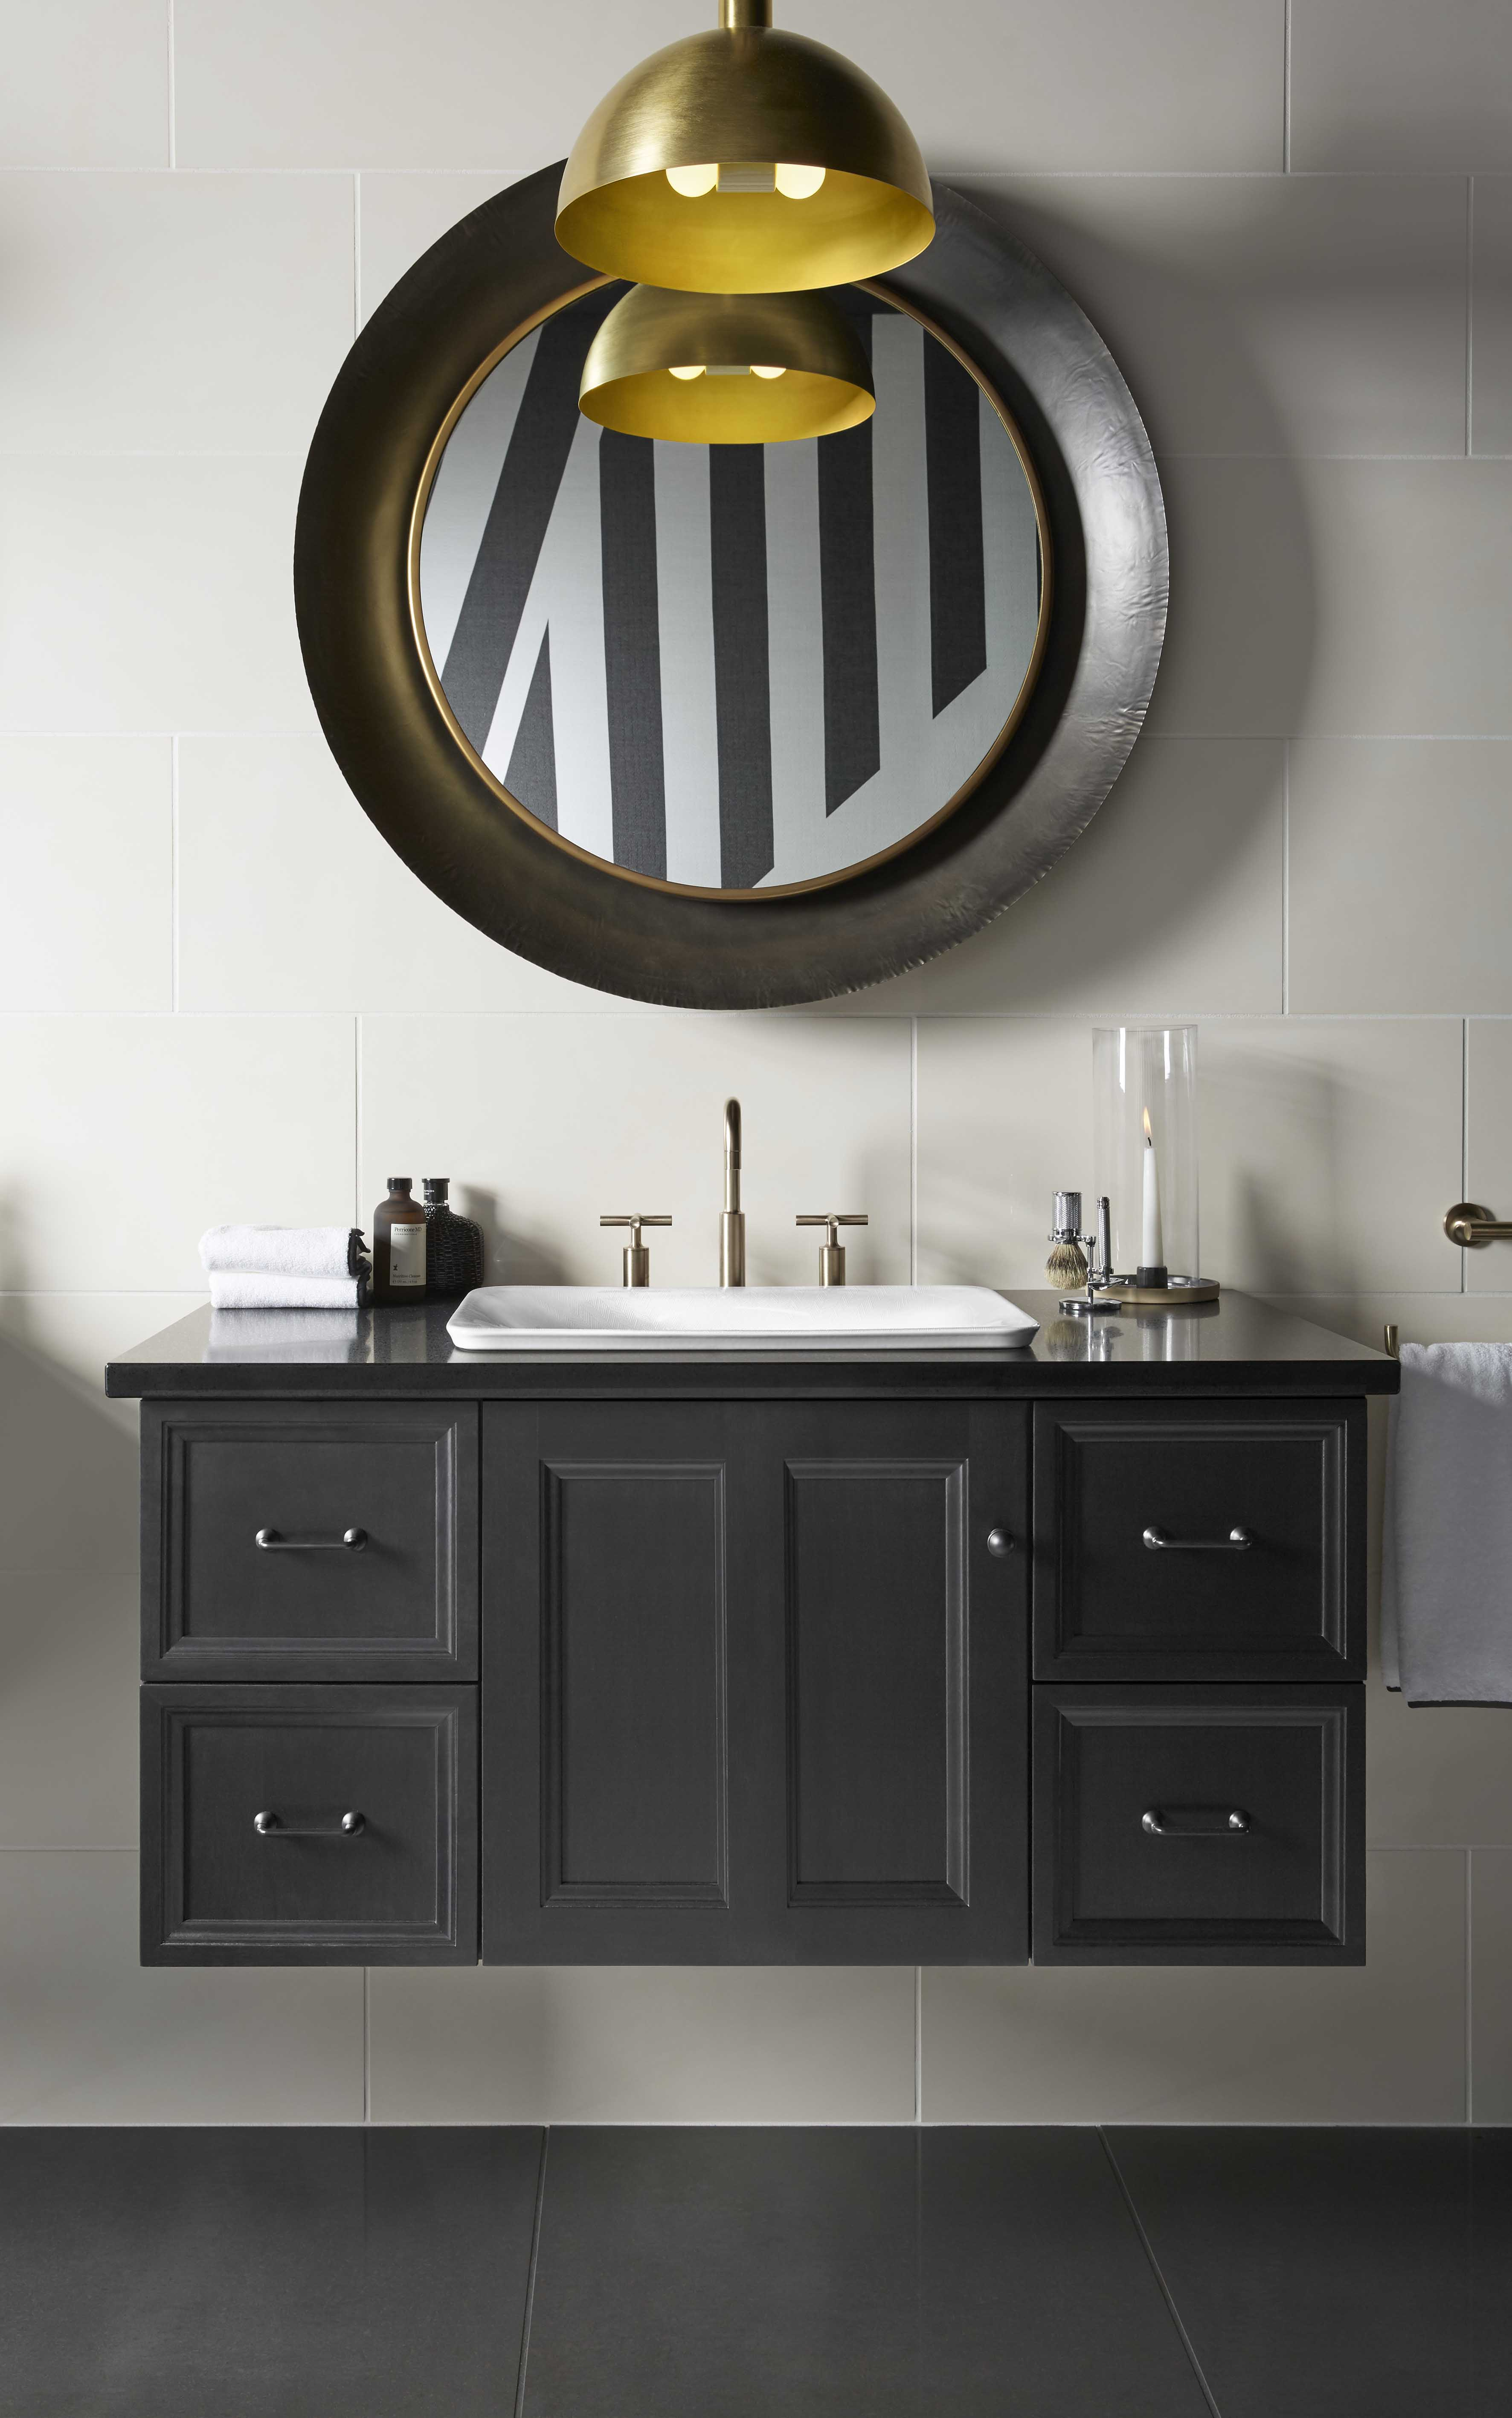 Damask® Vanity     Purist Faucet     A wide vanity paired with a smaller sink provides ample workspace and storage opportunities.